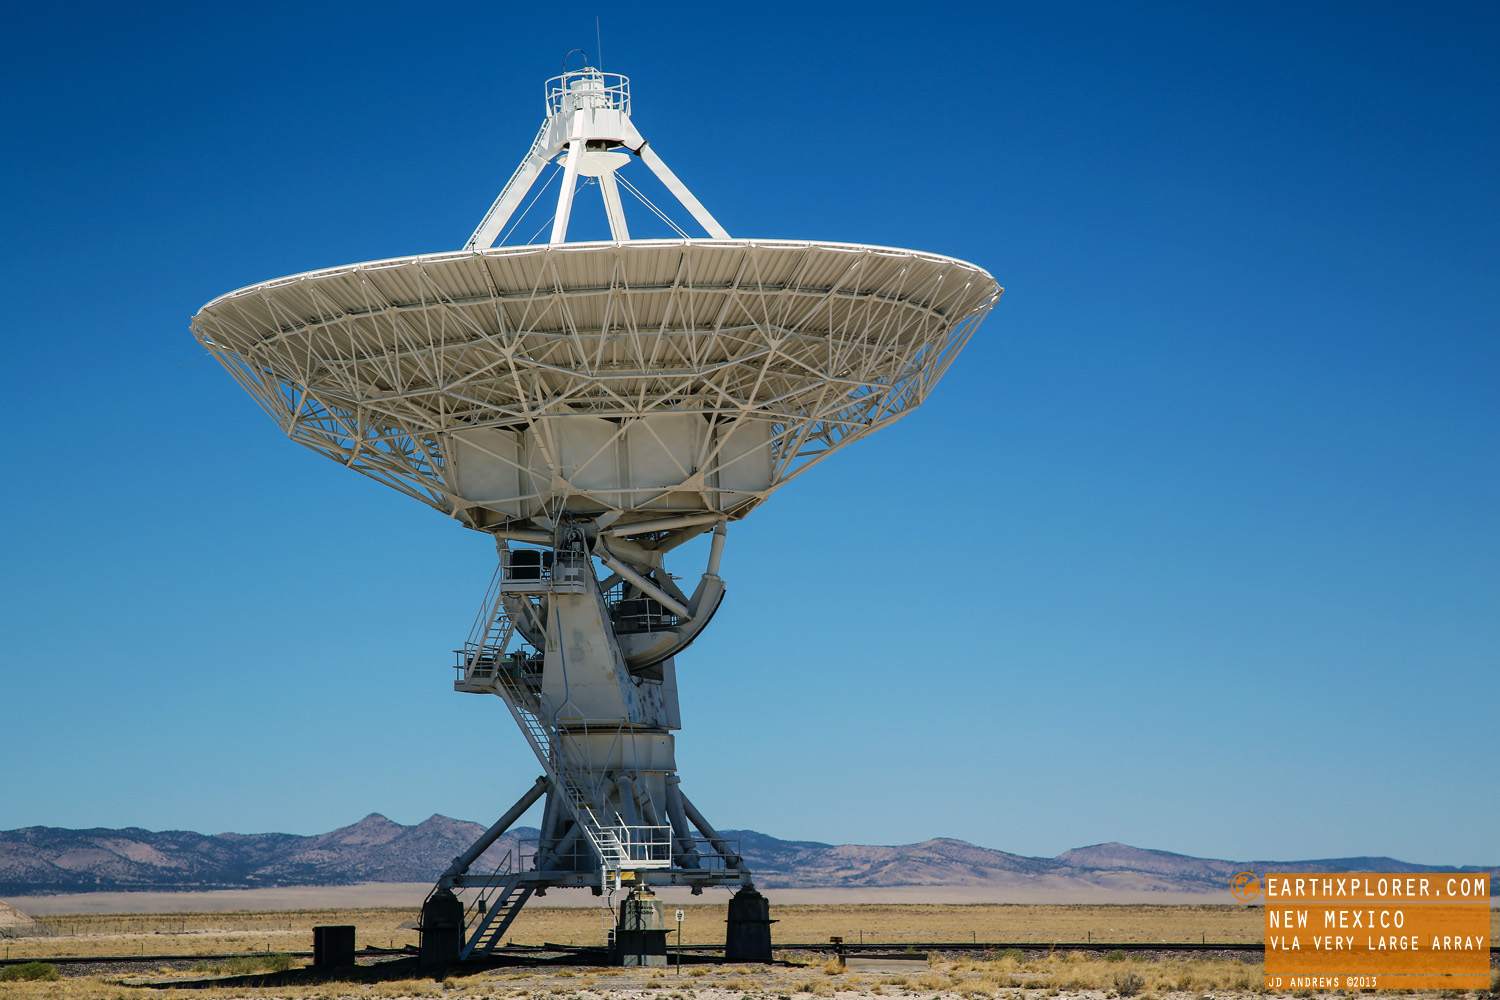 One of the world's premier astronomical radio observatories.